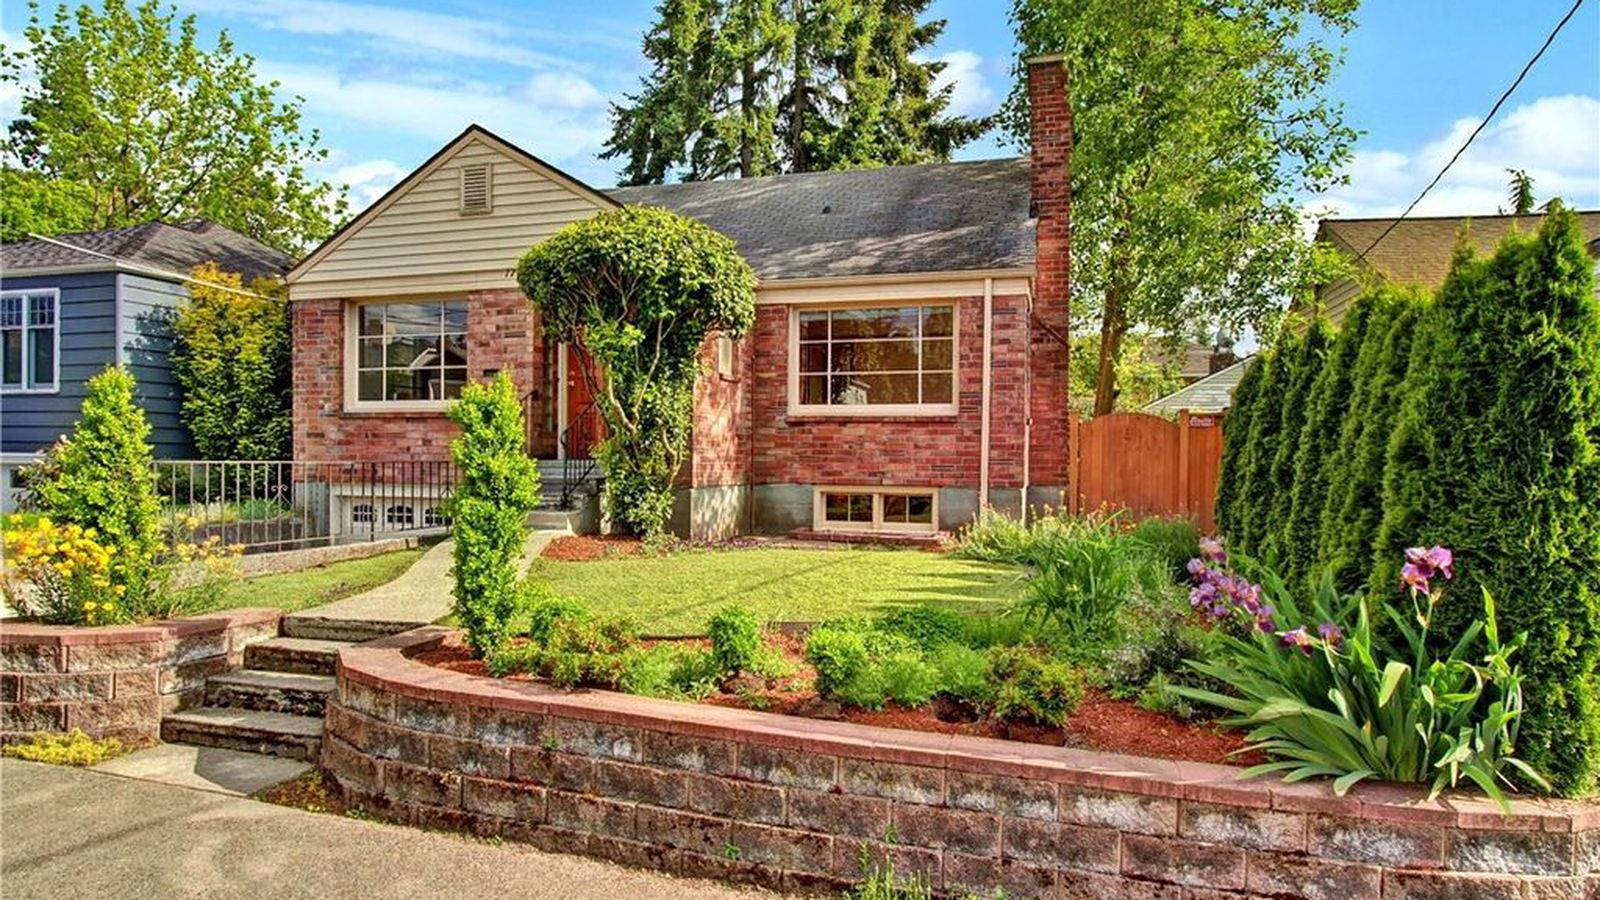 5 of the most affordable homes around green lake curbed for Affordable lakefront homes